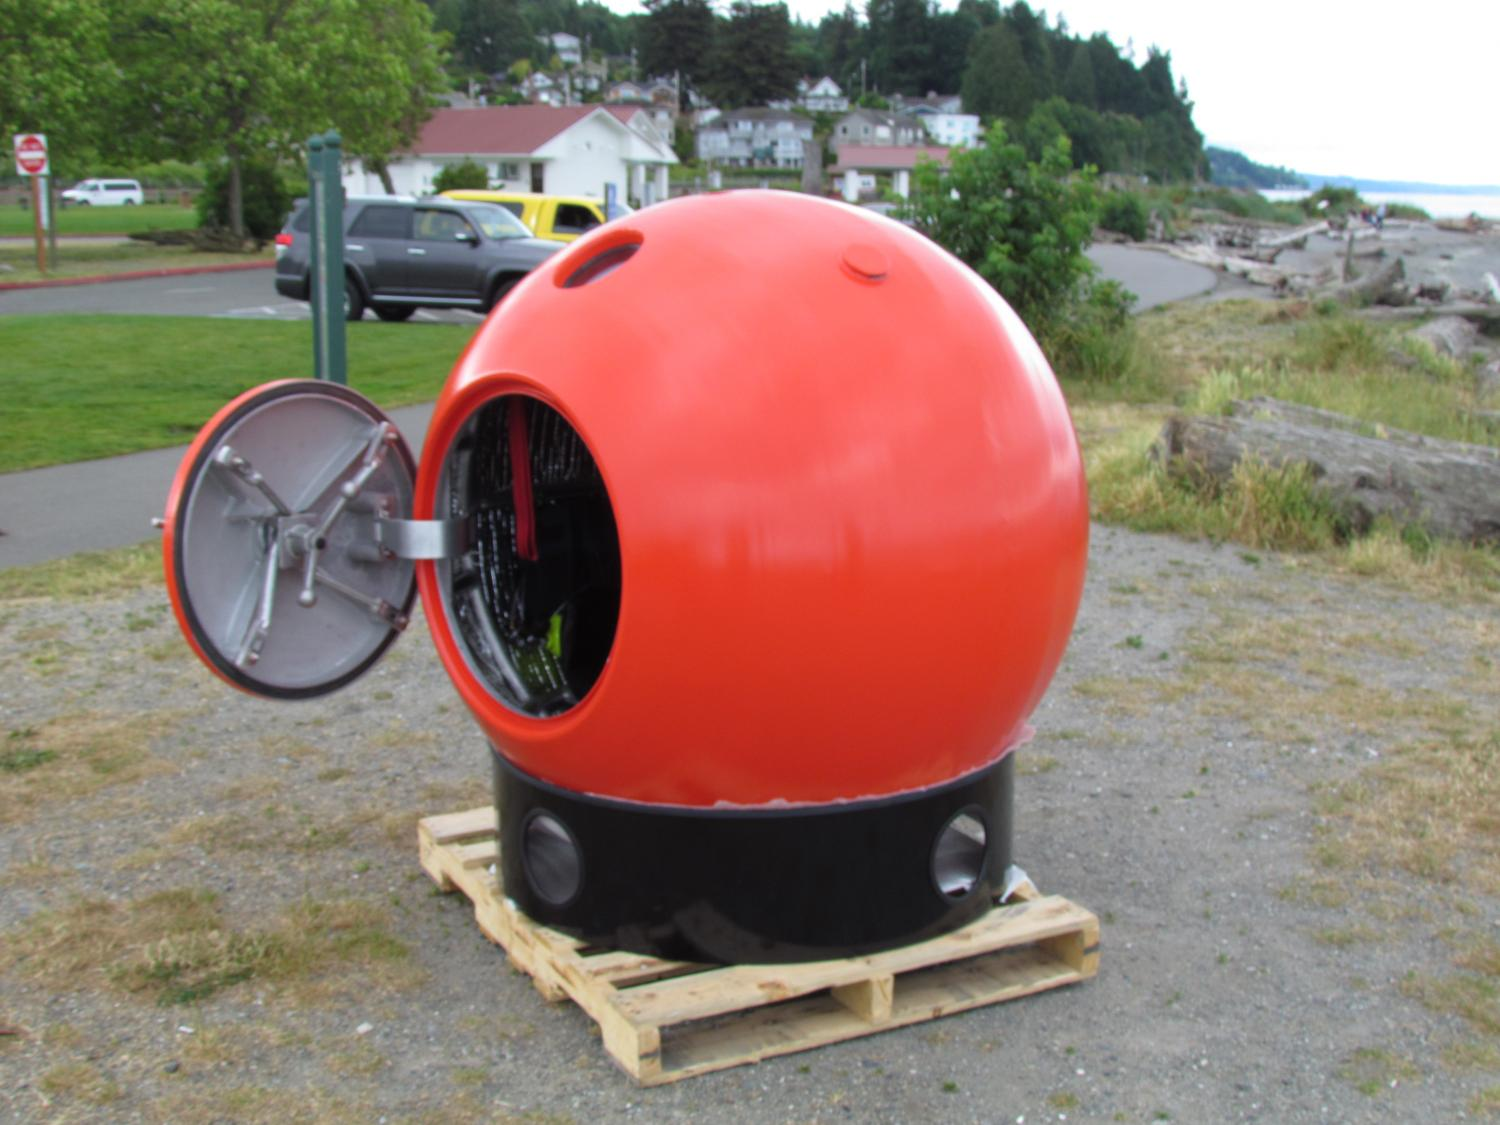 Survival Shelter Metal : No time to run tsunami pod aims save lives—at a price